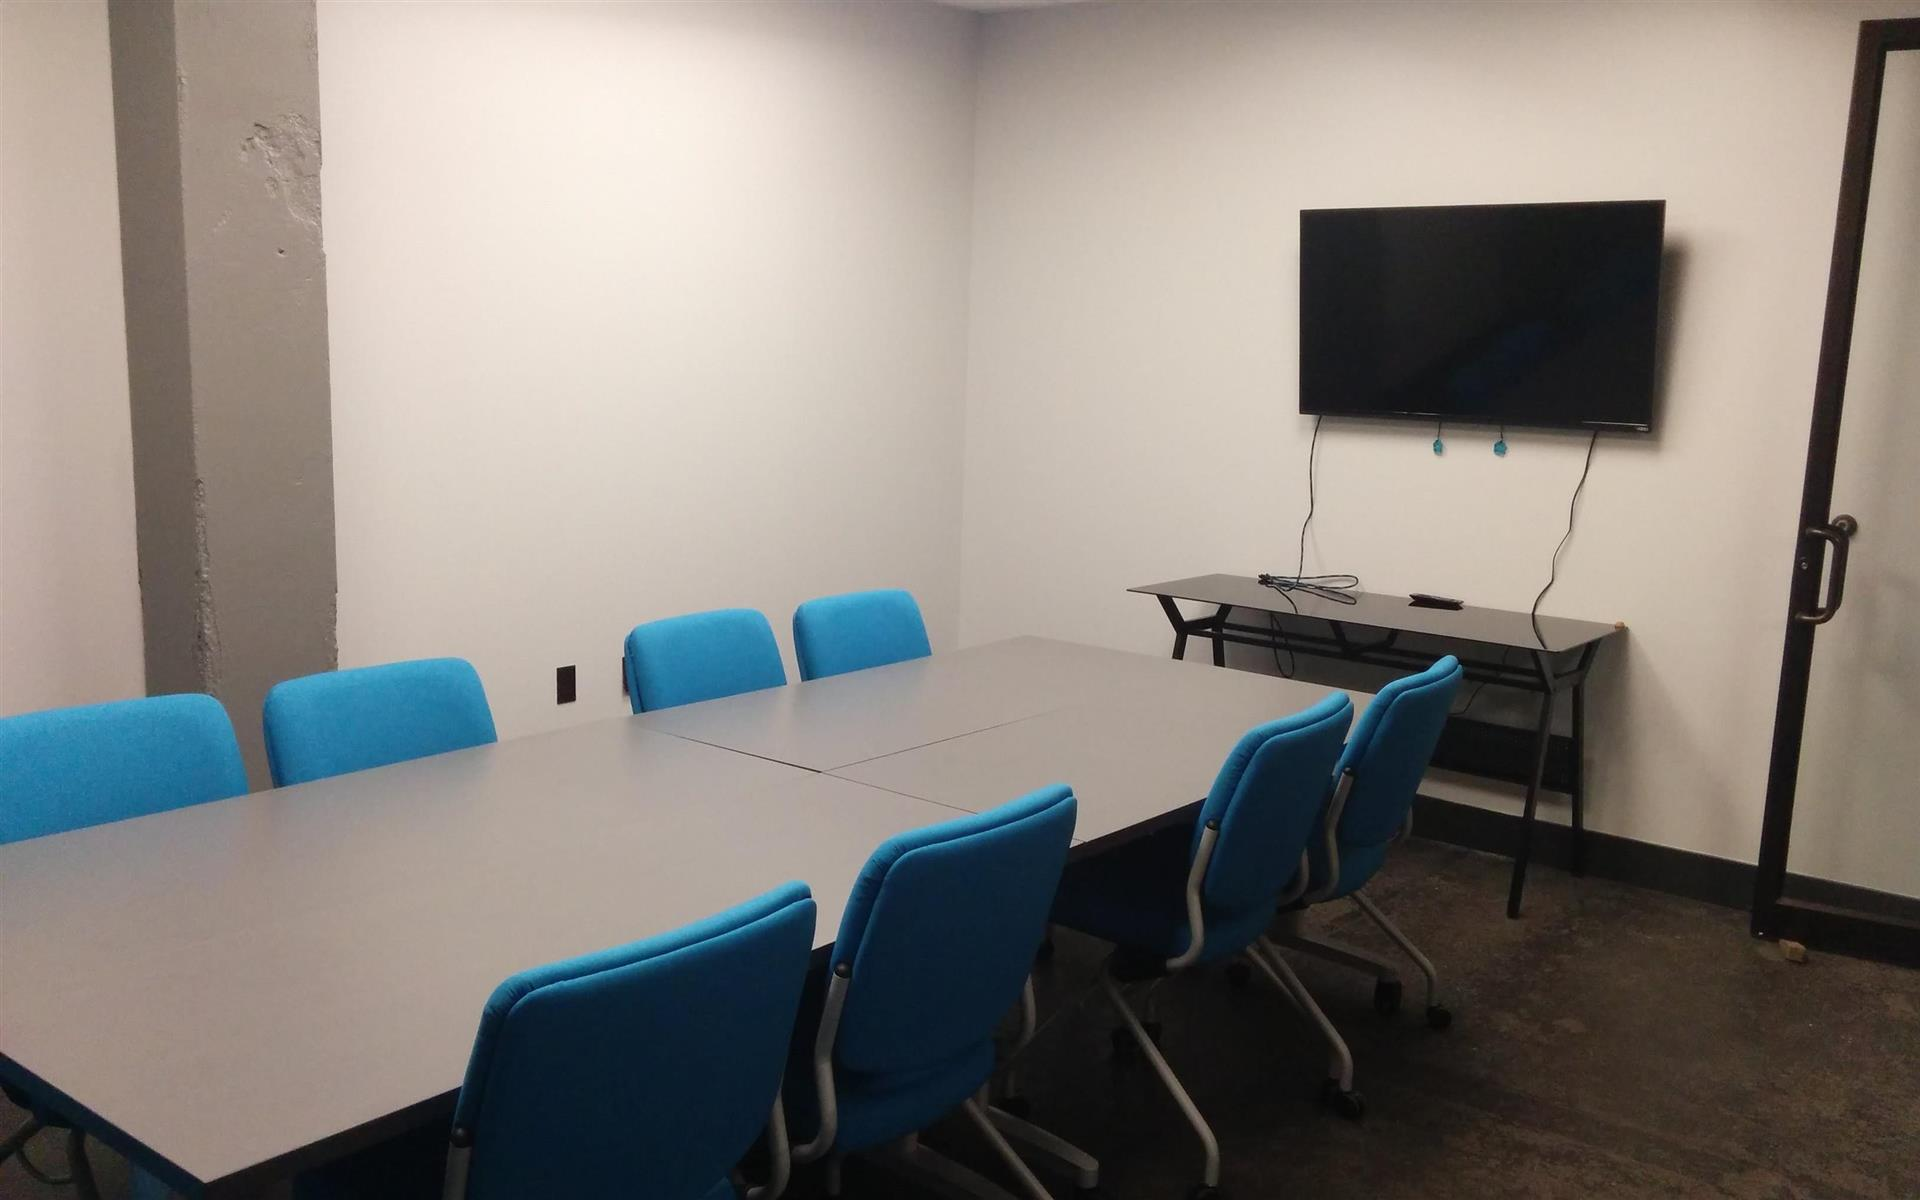 The Exchange - The Small Conference Room